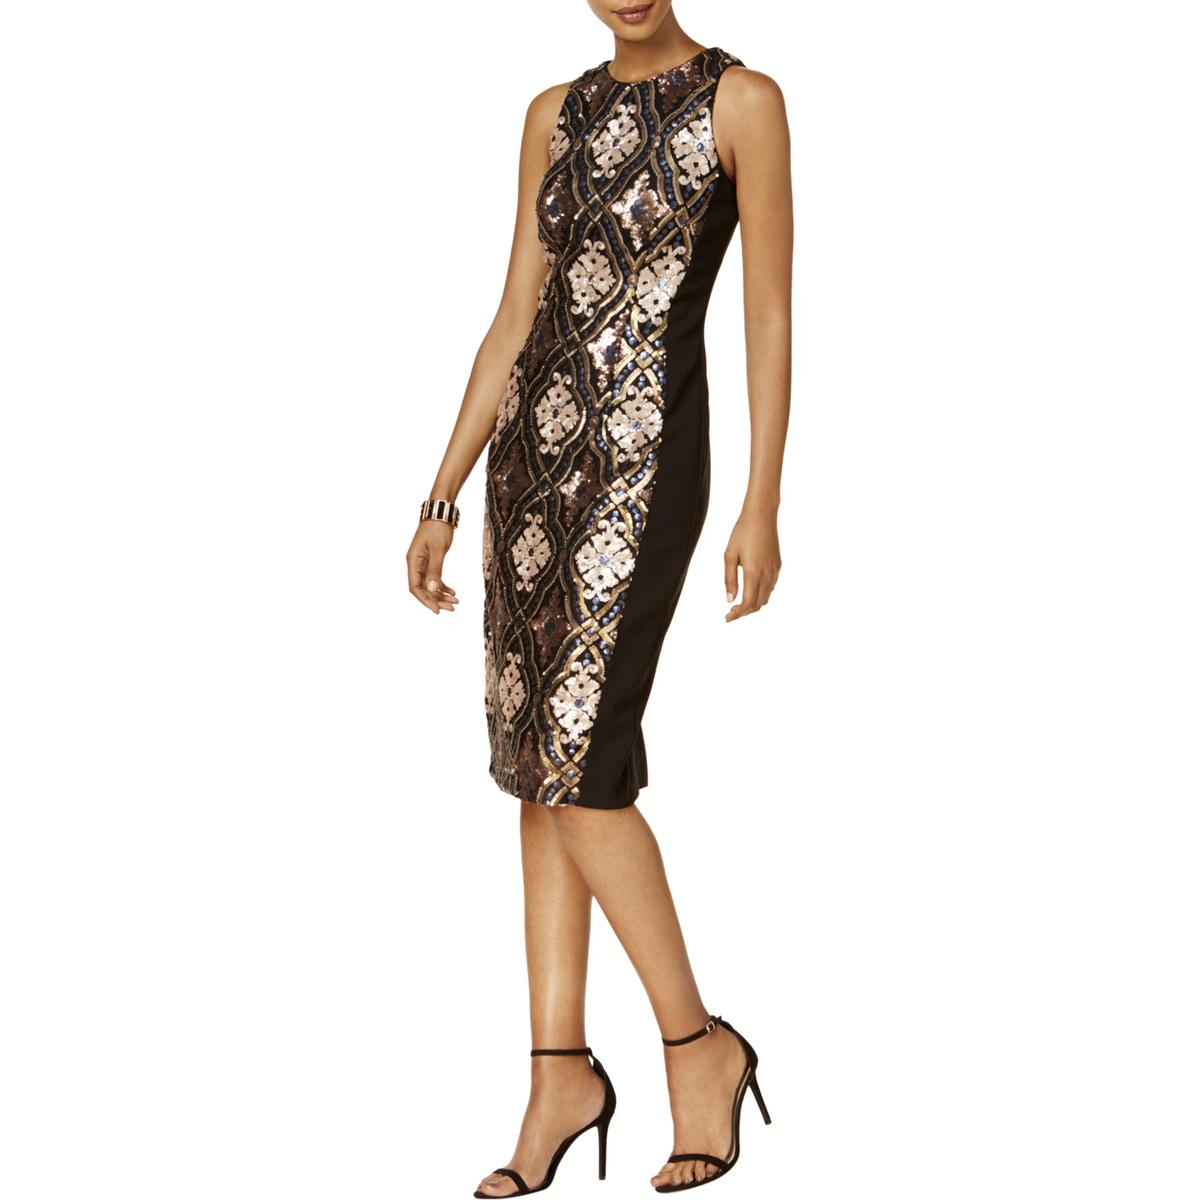 8ad12662f28 Details about Jax Black Label Womens Sequined Midi Party Cocktail Dress BHFO  2423